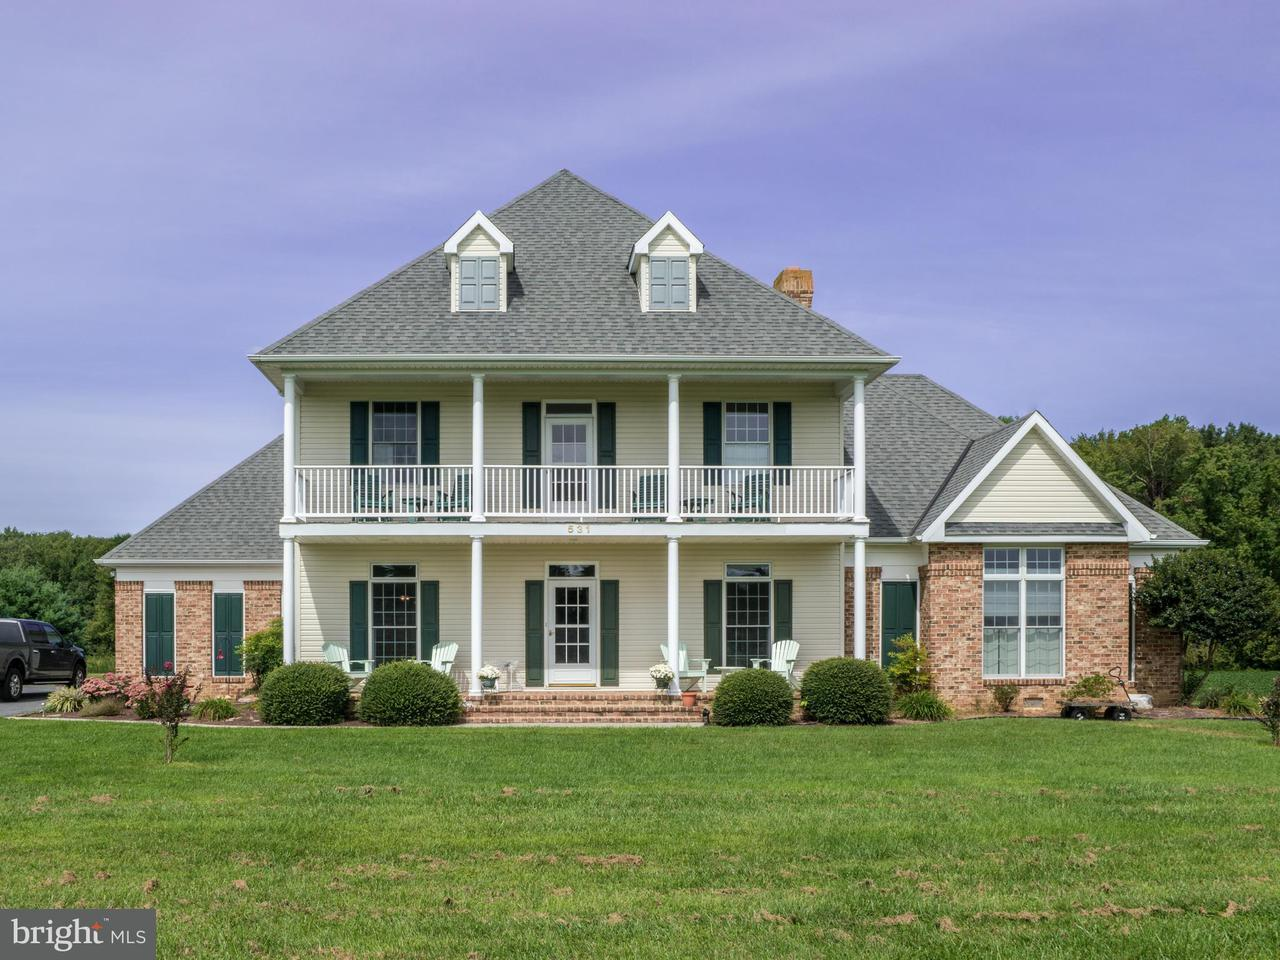 Single Family Home for Sale at 531 WHITE MARSH Road 531 WHITE MARSH Road Centreville, Maryland 21617 United States